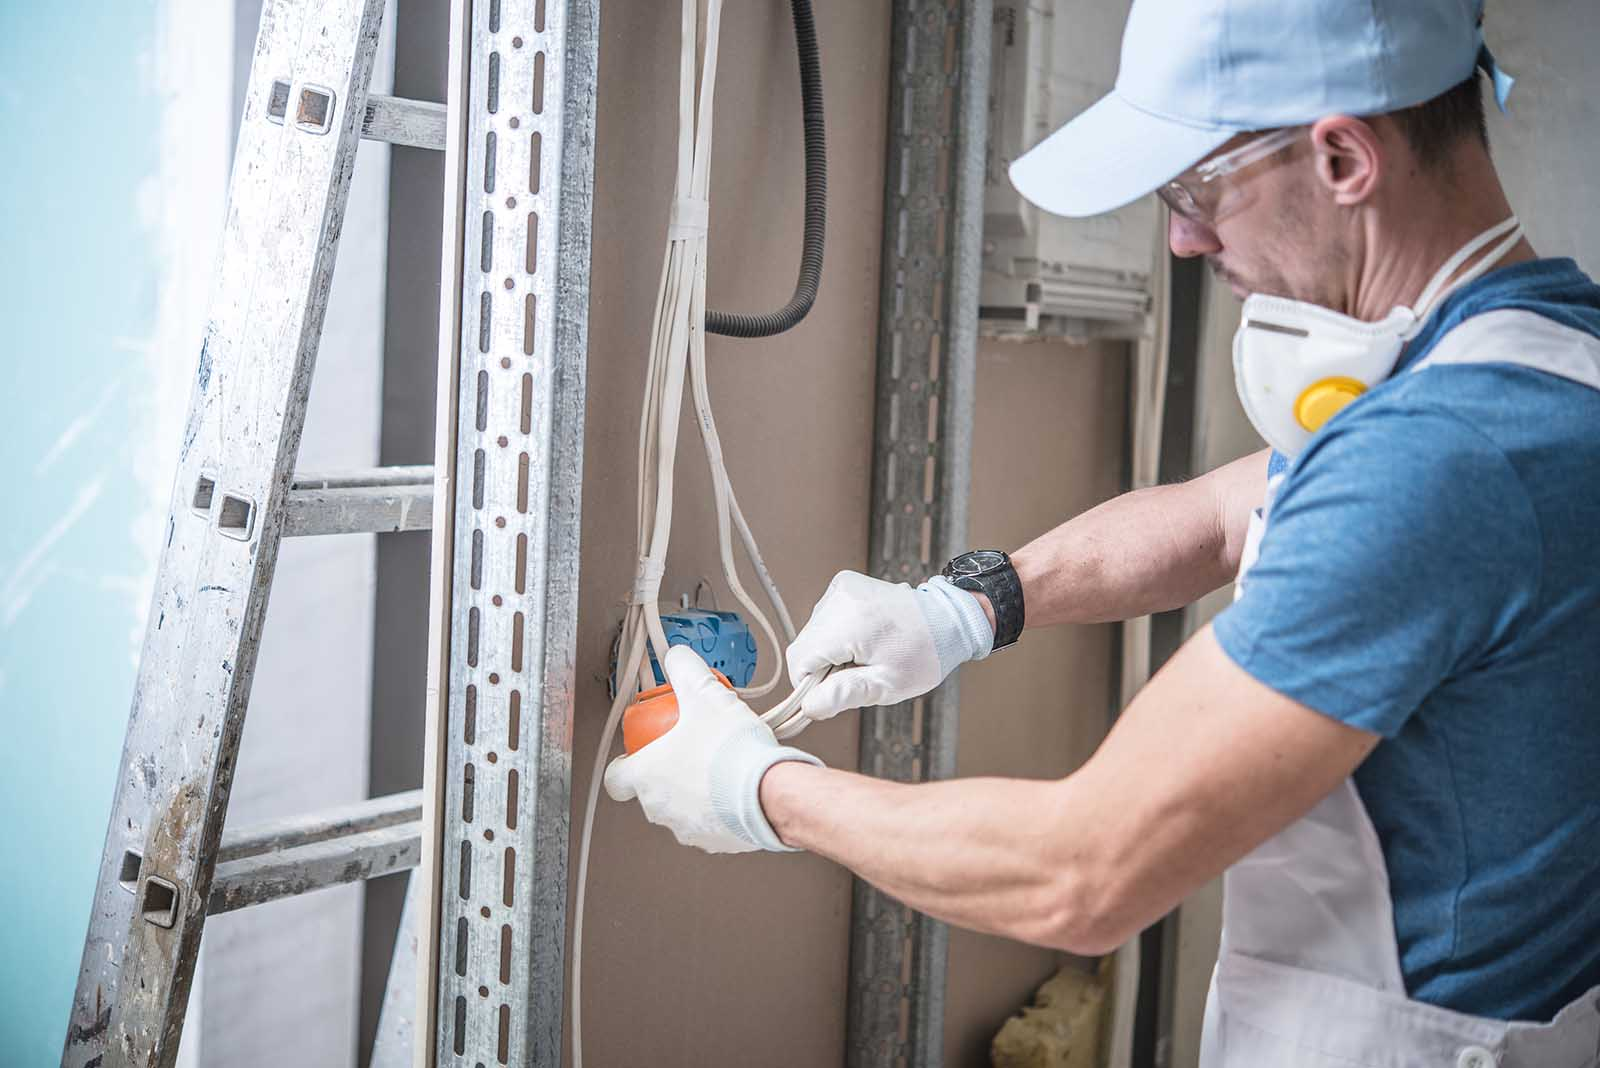 electricians in ajax electrician